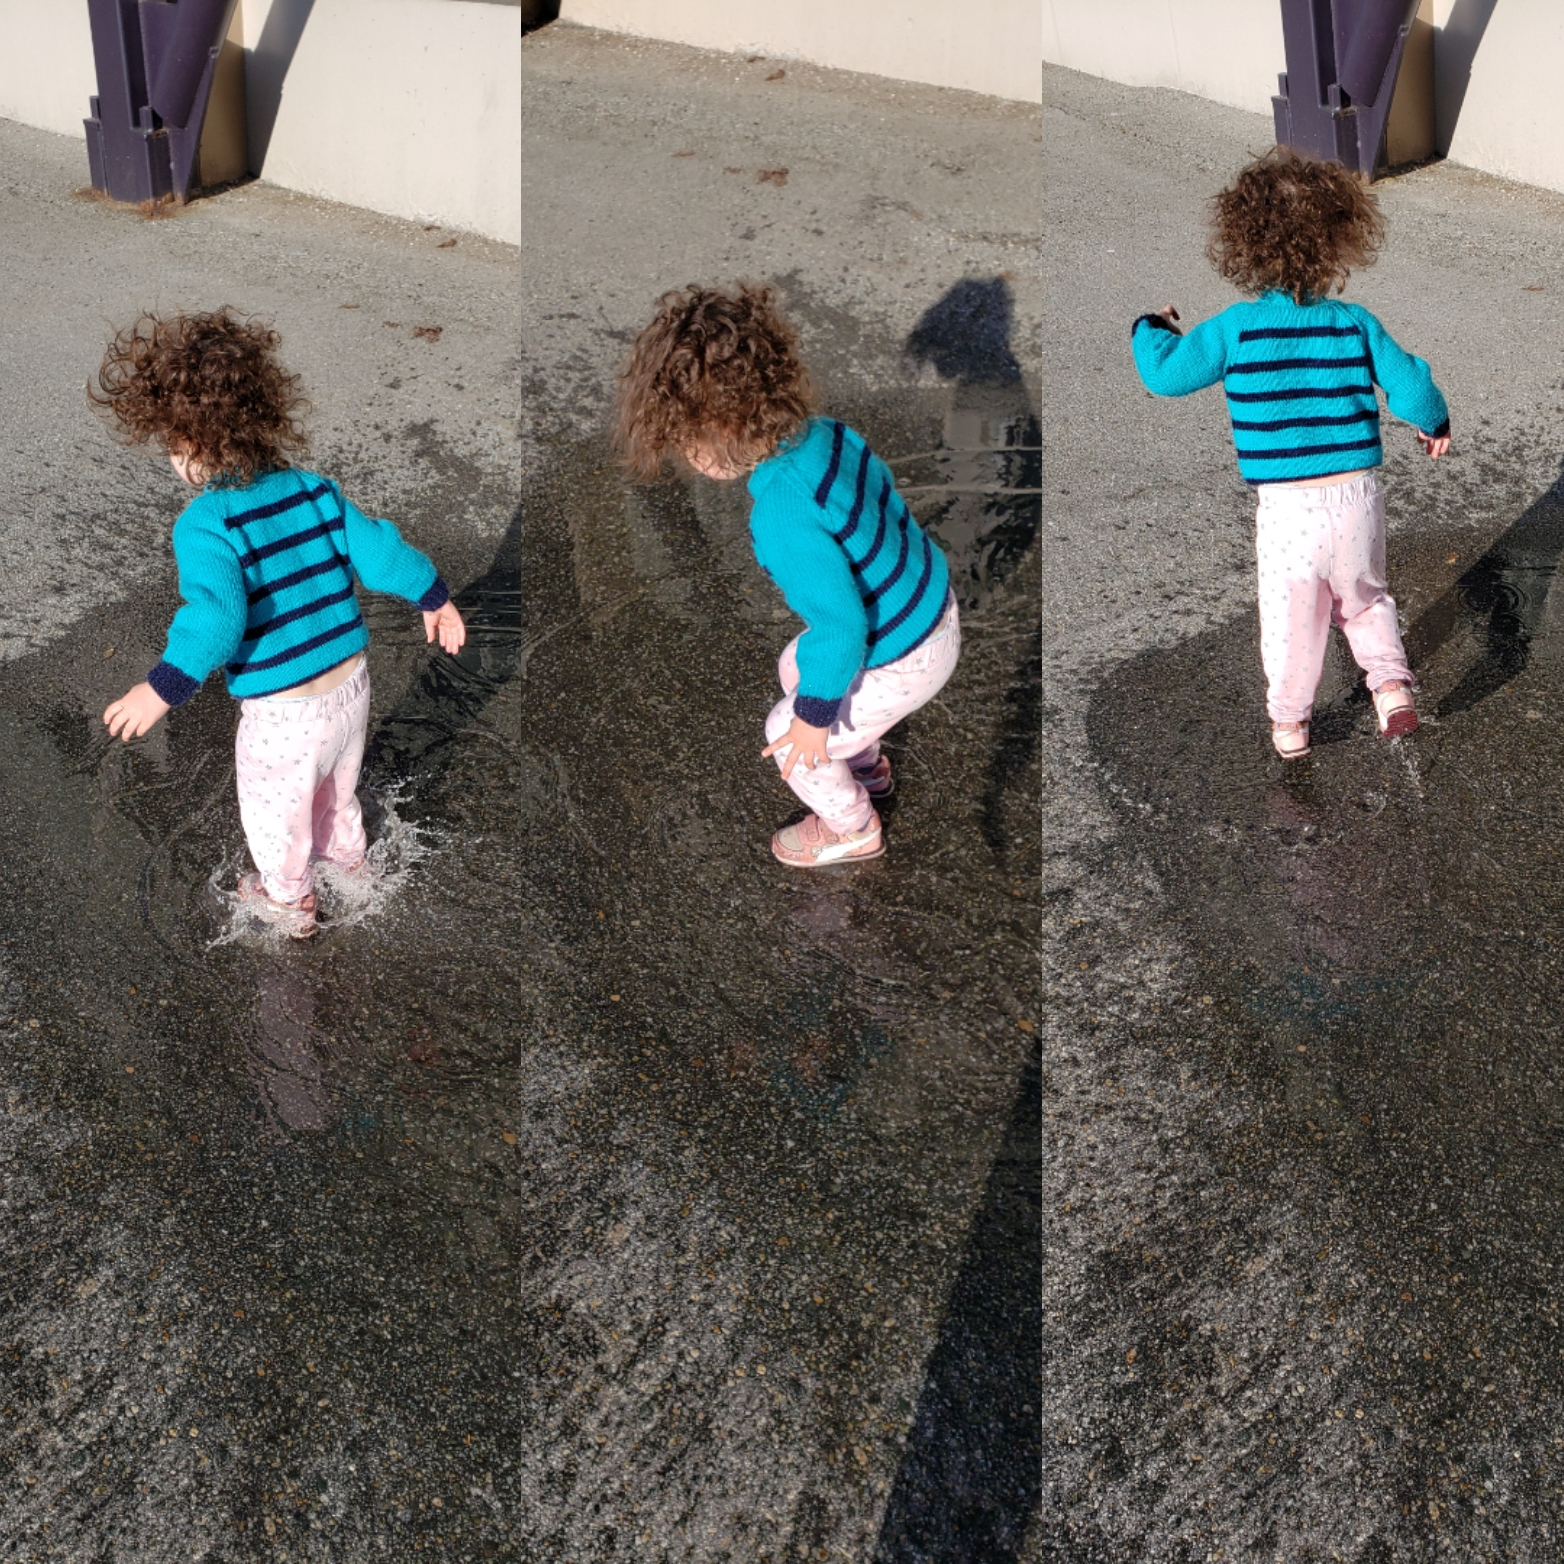 Three vertical images of a toddler in a blue sweater jumping in a mud puddle.